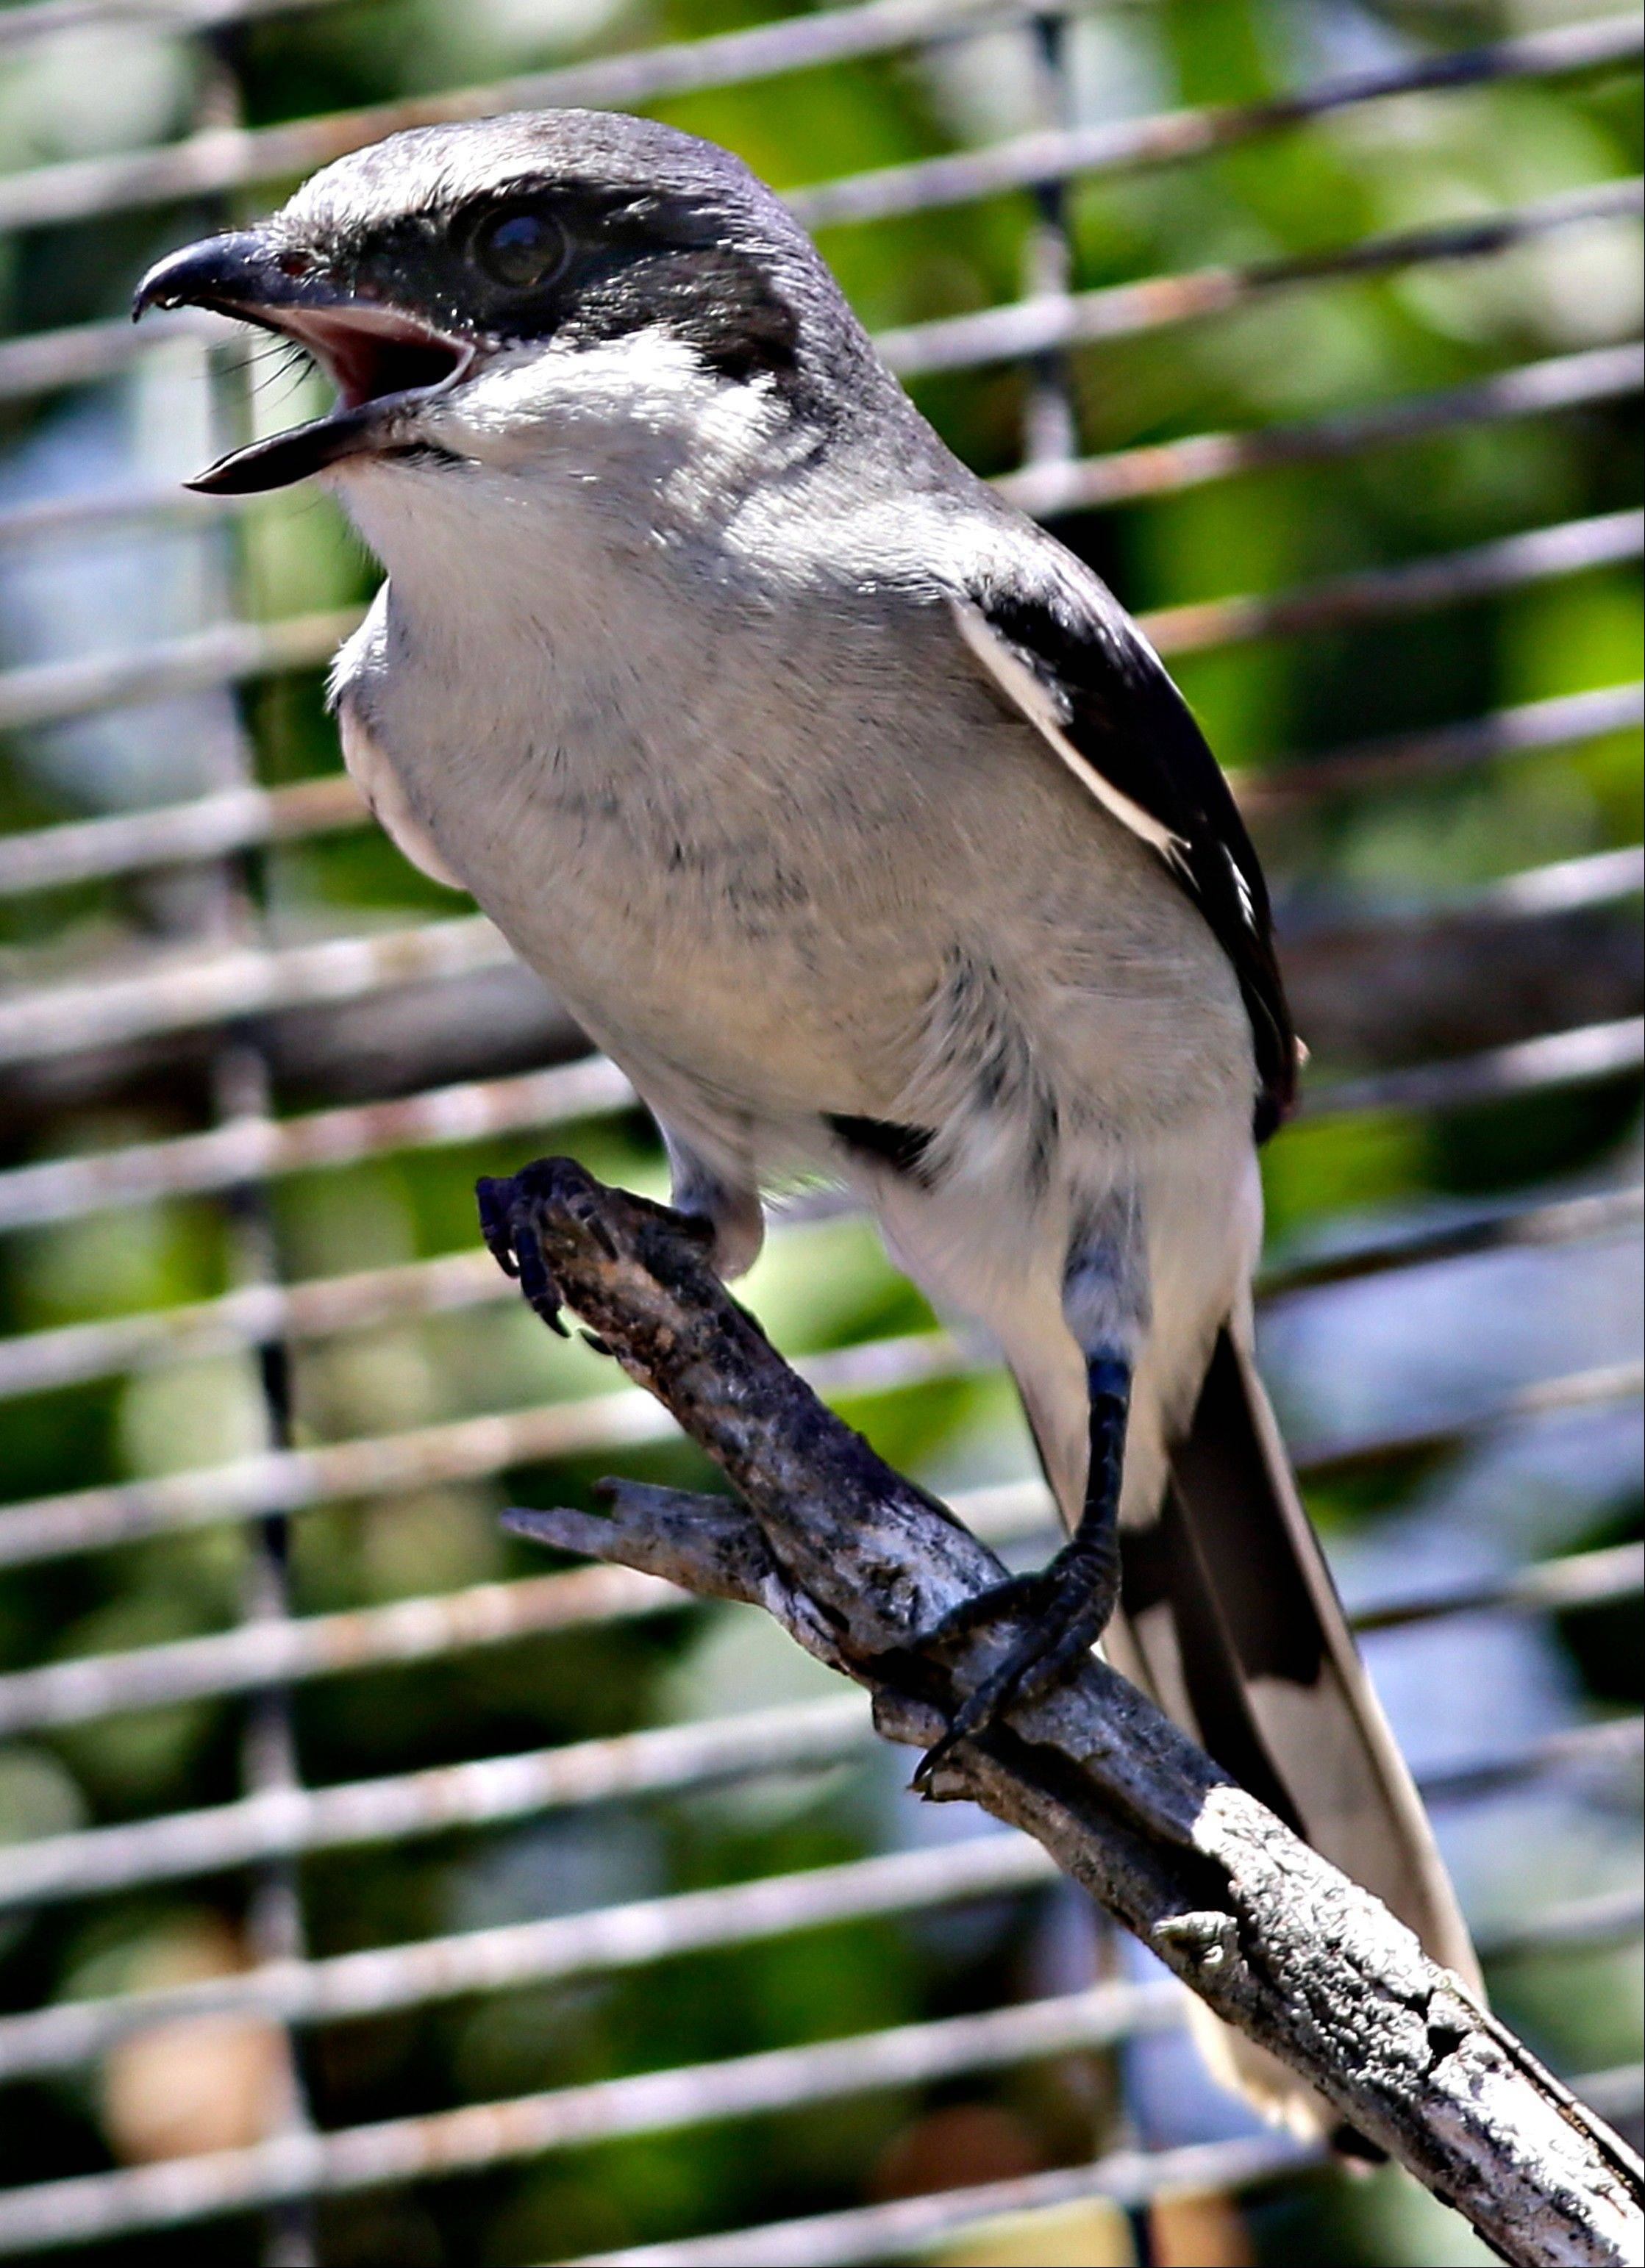 A San Clemente Island loggerhead shrike chirpsin its enclosure at a facility on San Clemente Island. The rare bird has gone from near extinction because of military training to proliferation, even during an era of numerous conflicts with extensive military training.